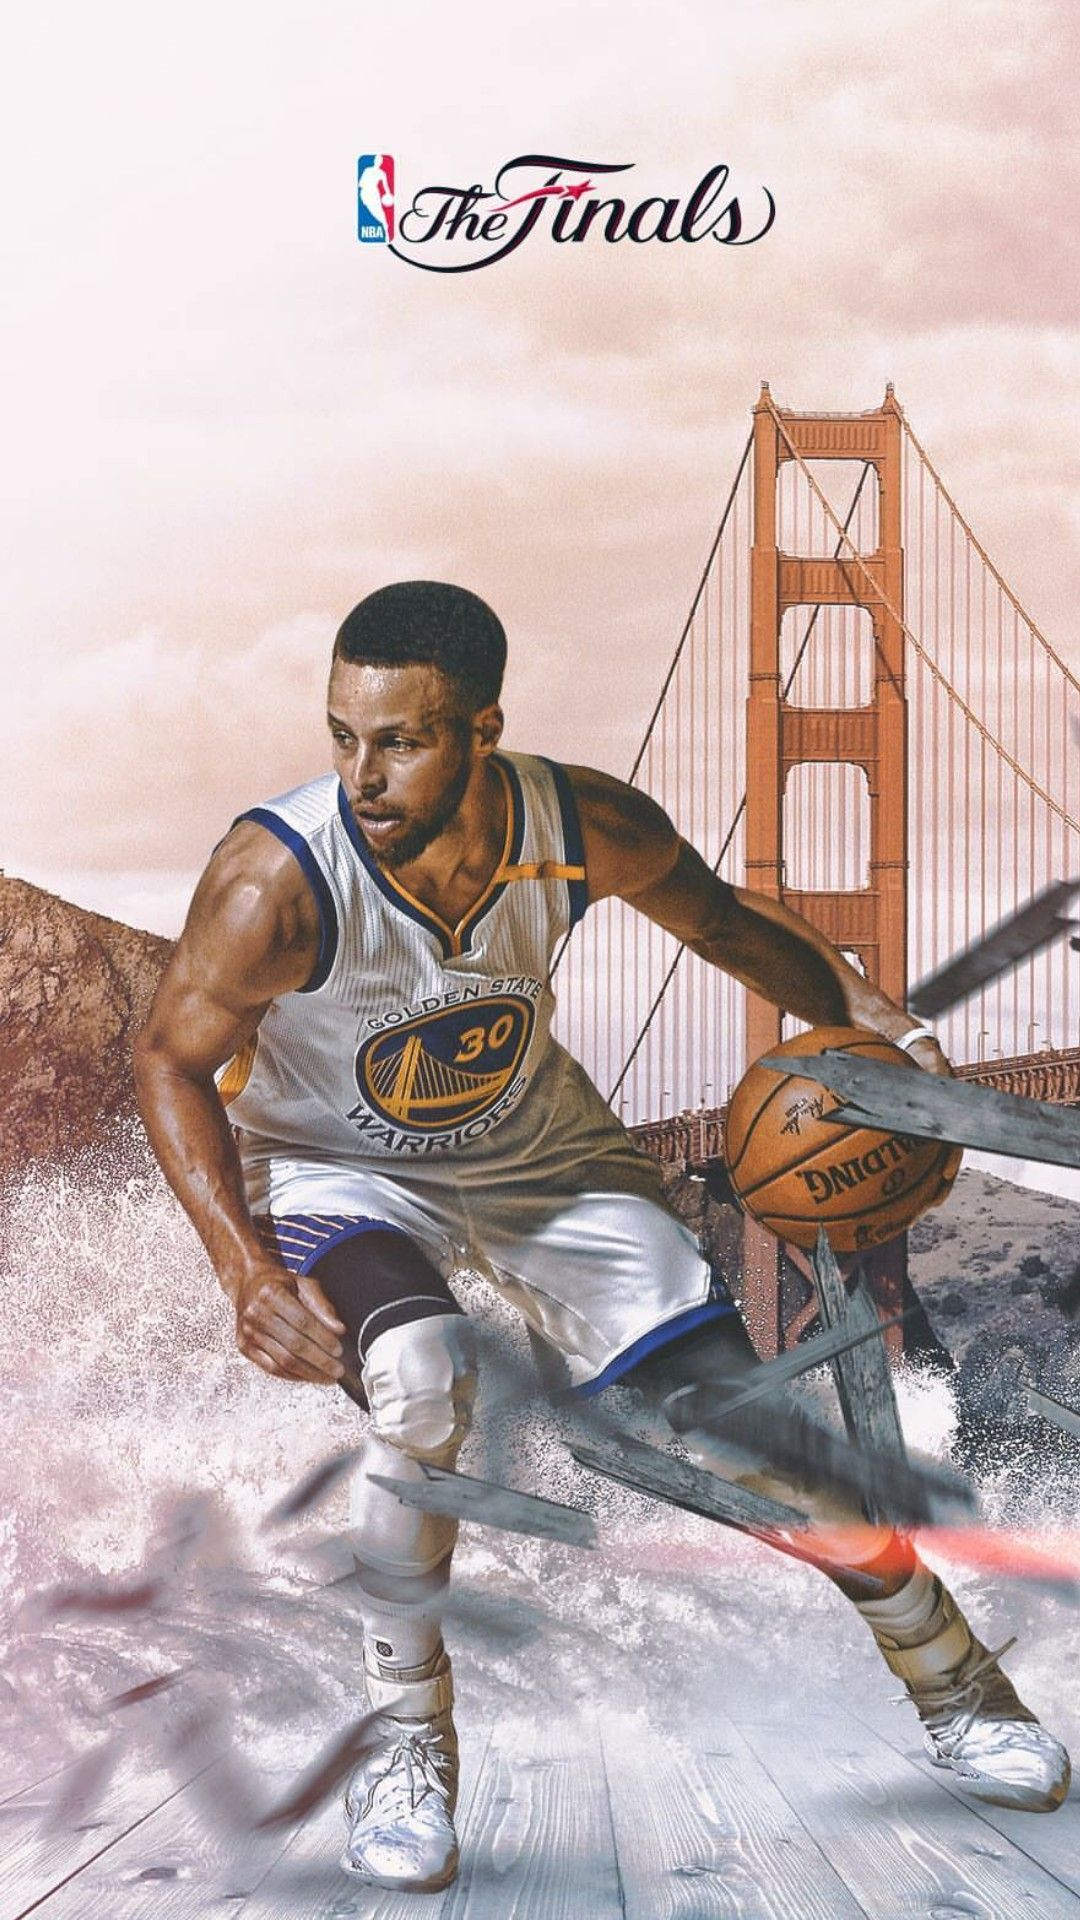 Iphone Stephen Curry Wallpaper Kolpaper Awesome Free Hd Wallpapers